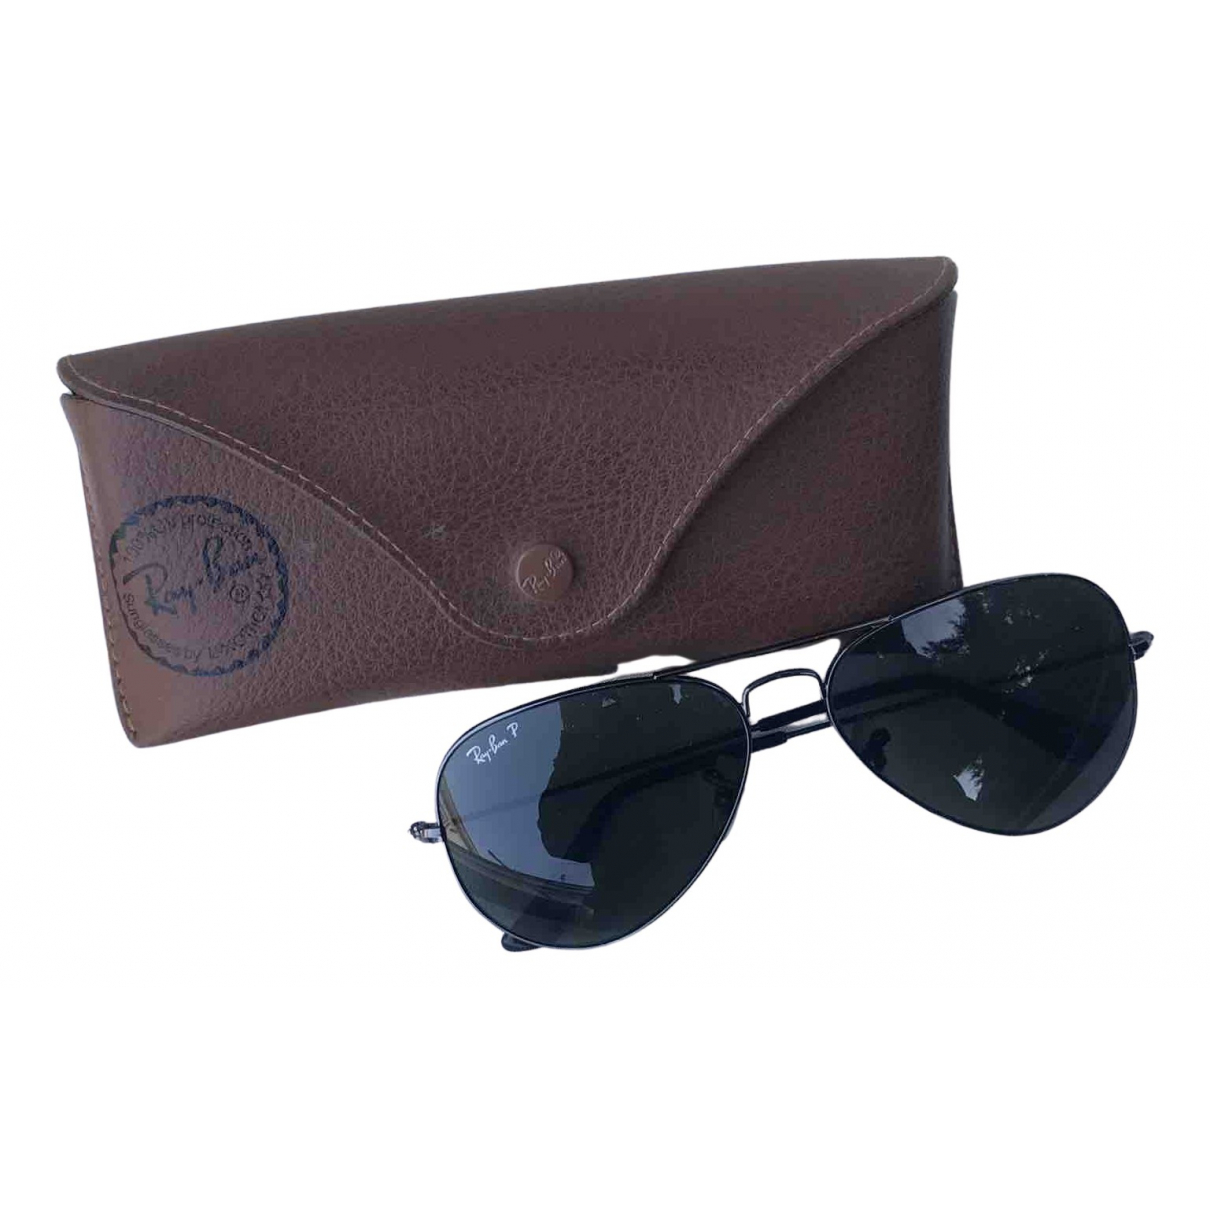 Ray-ban Aviator Black Metal Sunglasses for Men N